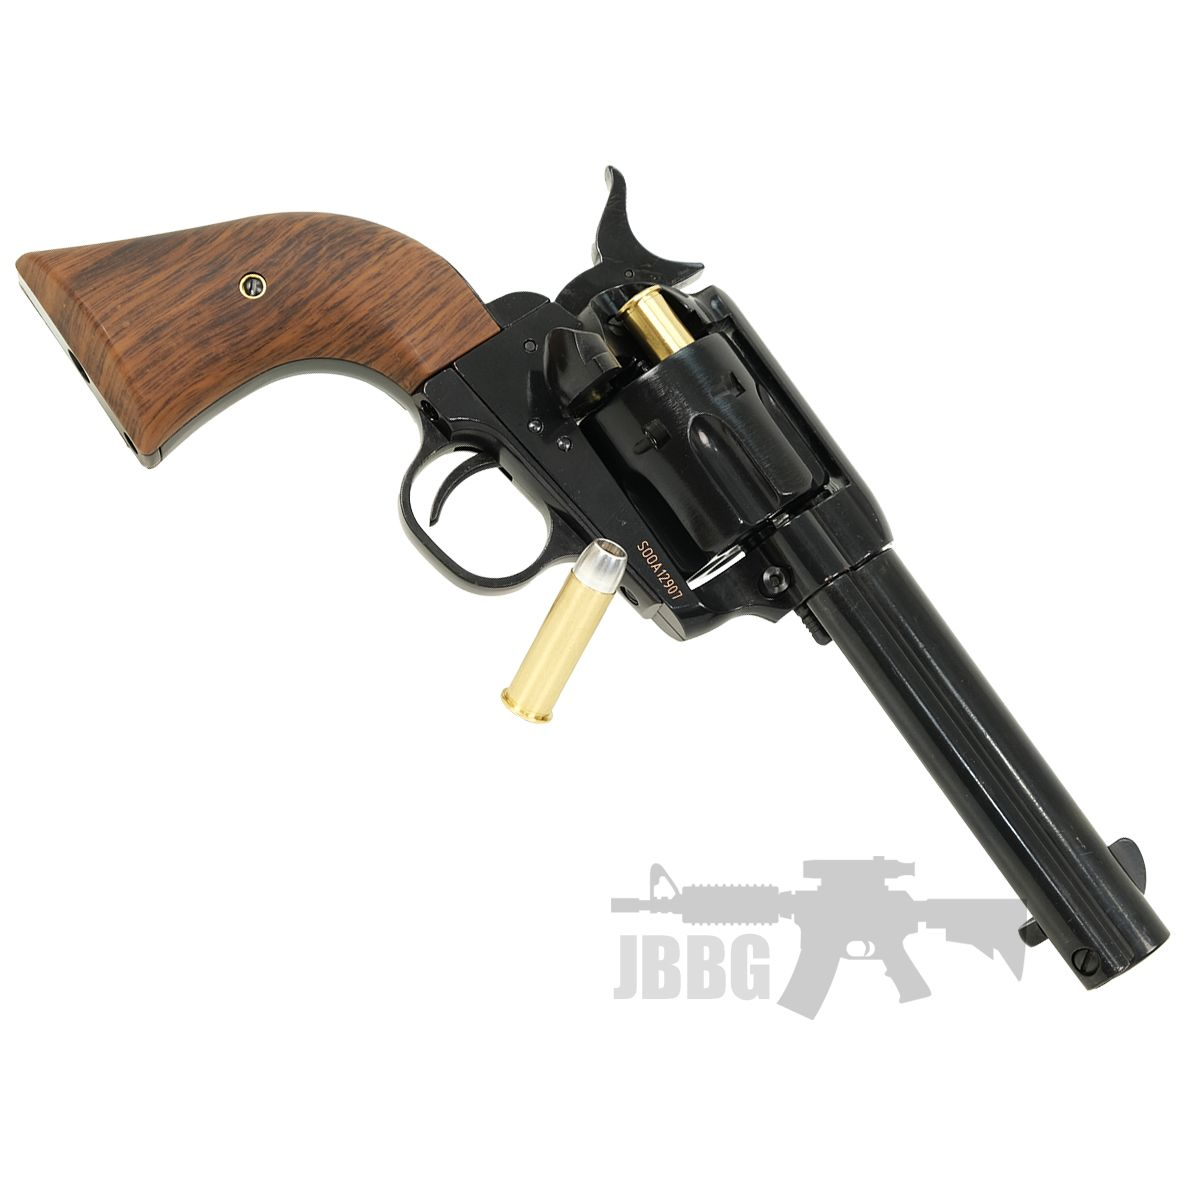 King Arms SAA 45 Peacemaker Revolver S 55